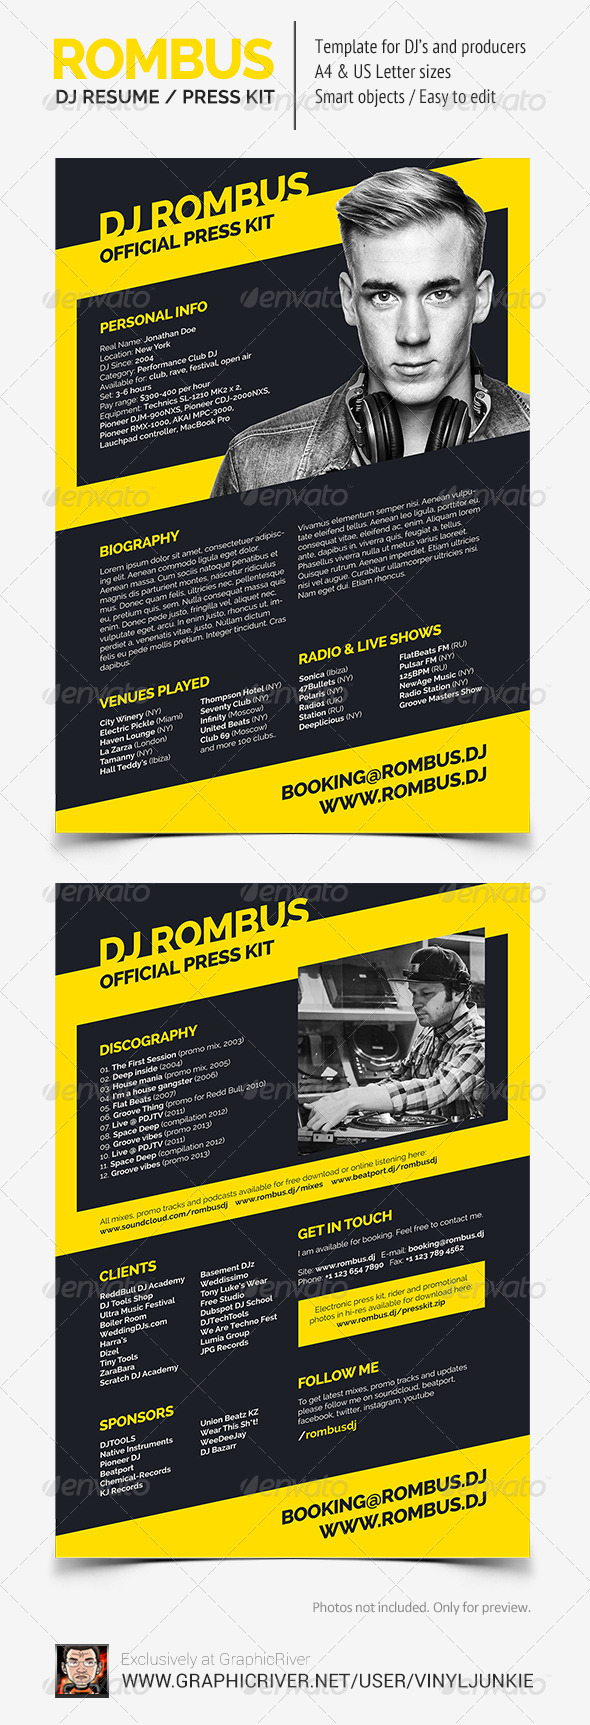 rombus dj resume press kit psd template by vinyljunkie